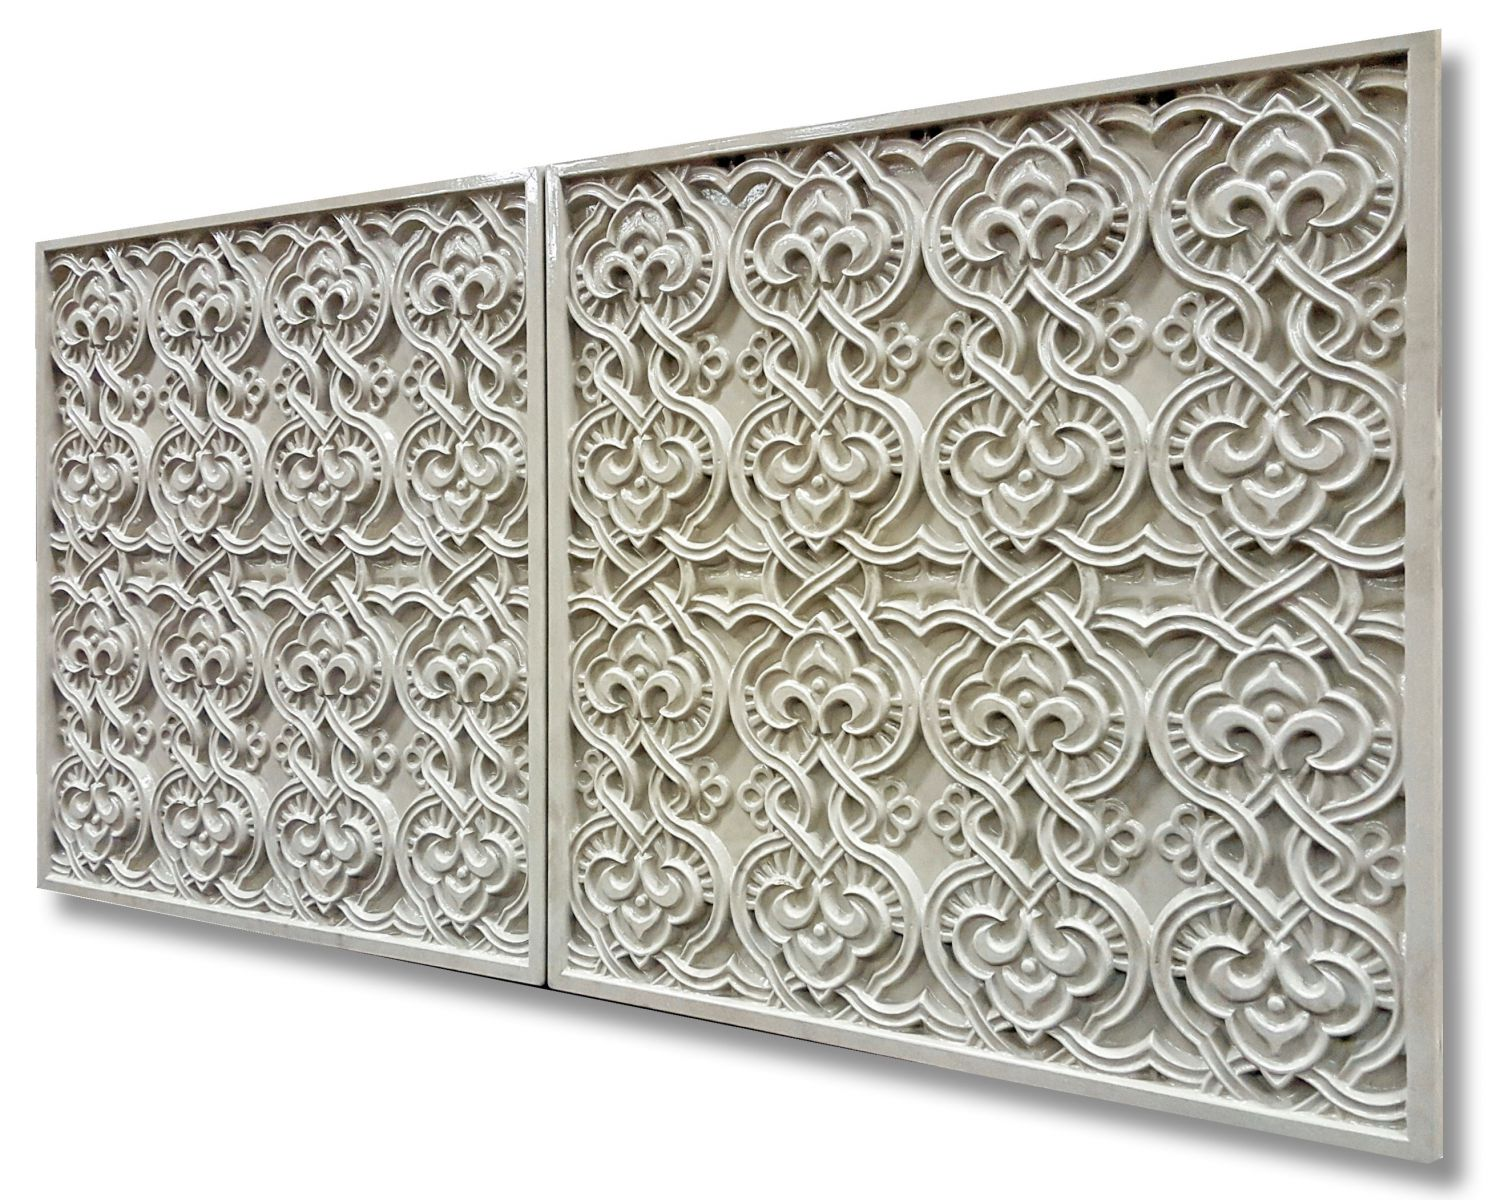 The new arabic style tile 600x600x25